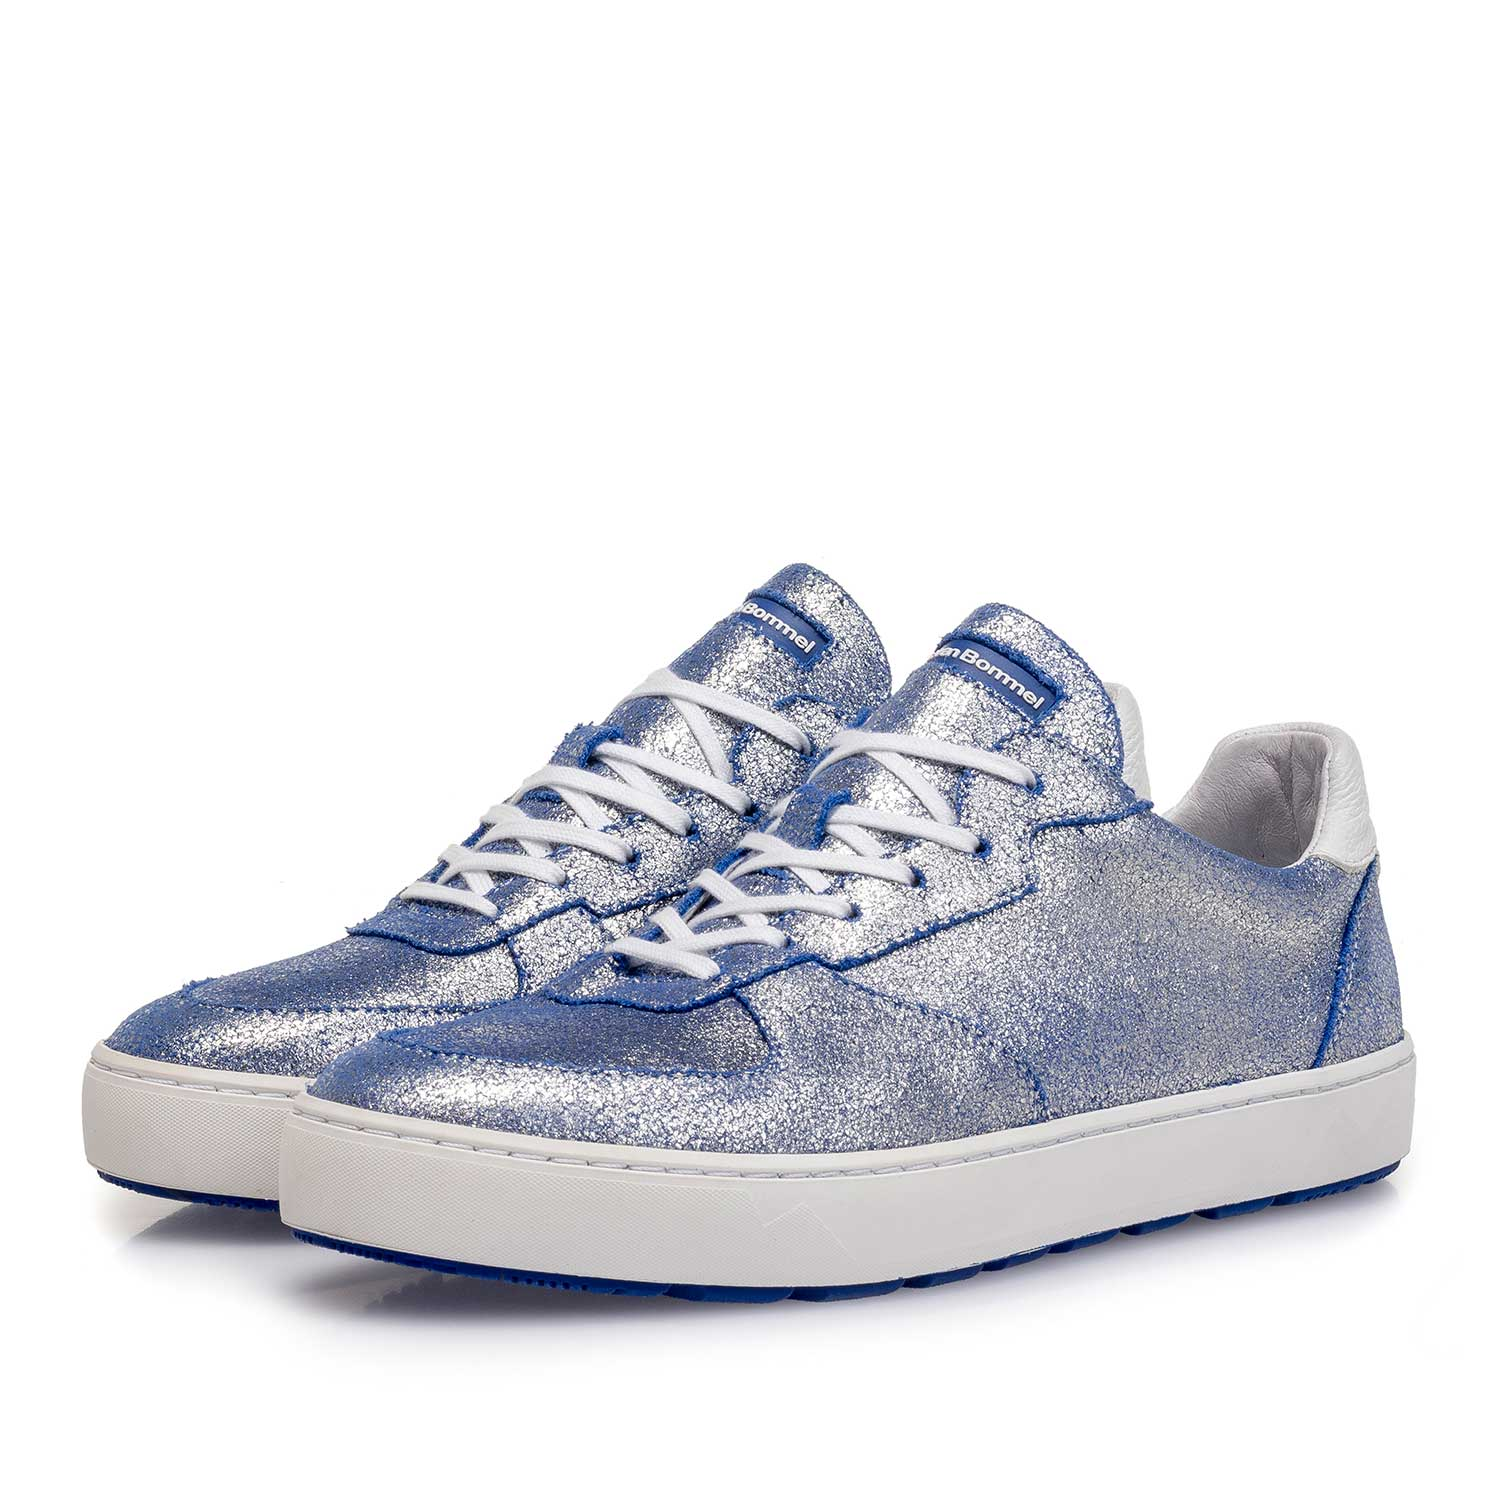 85272/17 - Silver metallic leather sneaker with changing effect